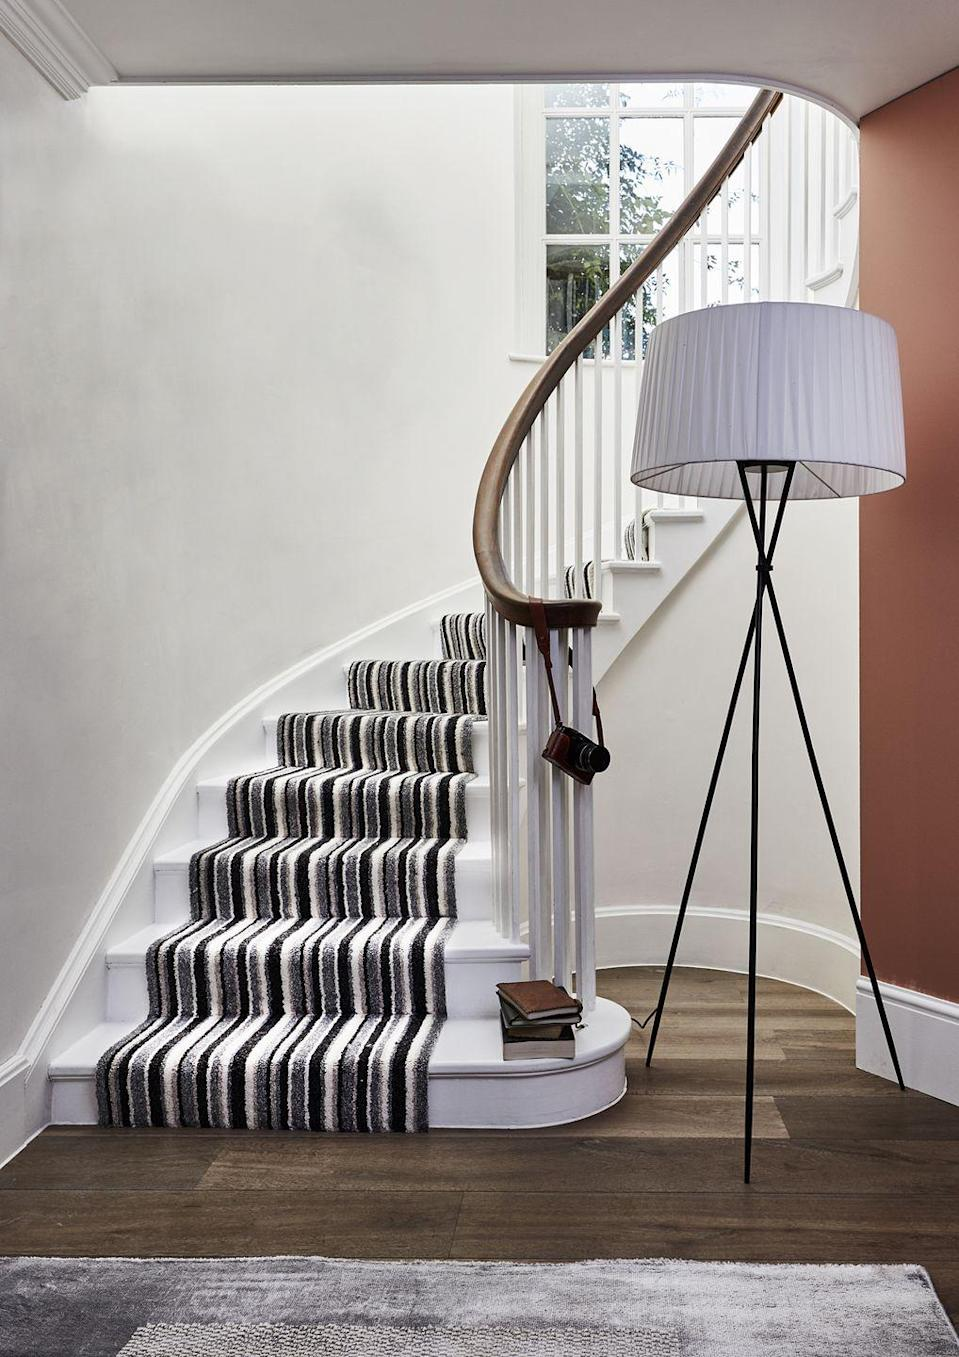 """<p>As well as drawing attention, striped carpets help create the illusion of a bigger space, which is great for a smaller <a href=""""https://www.housebeautiful.com/uk/decorate/a36379892/interior-tweaks-happy-home/"""" rel=""""nofollow noopener"""" target=""""_blank"""" data-ylk=""""slk:home"""" class=""""link rapid-noclick-resp"""">home</a>. </p><p>'Often the first thing you see when entering a house, the stairs and hallway create a first and lasting impression on your guests,' says Jemma Dayman, Buyer, Carpets and Rugs at Carpetright. 'It's the perfect area to take risks and be daring with your styling.'</p><p>Pictured: <a href=""""https://www.carpetright.co.uk/carpets/boston-stripes-pattern-carpet/"""" rel=""""nofollow noopener"""" target=""""_blank"""" data-ylk=""""slk:'Boston Stripes' by Carpetright"""" class=""""link rapid-noclick-resp"""">'Boston Stripes' by Carpetright</a></p>"""